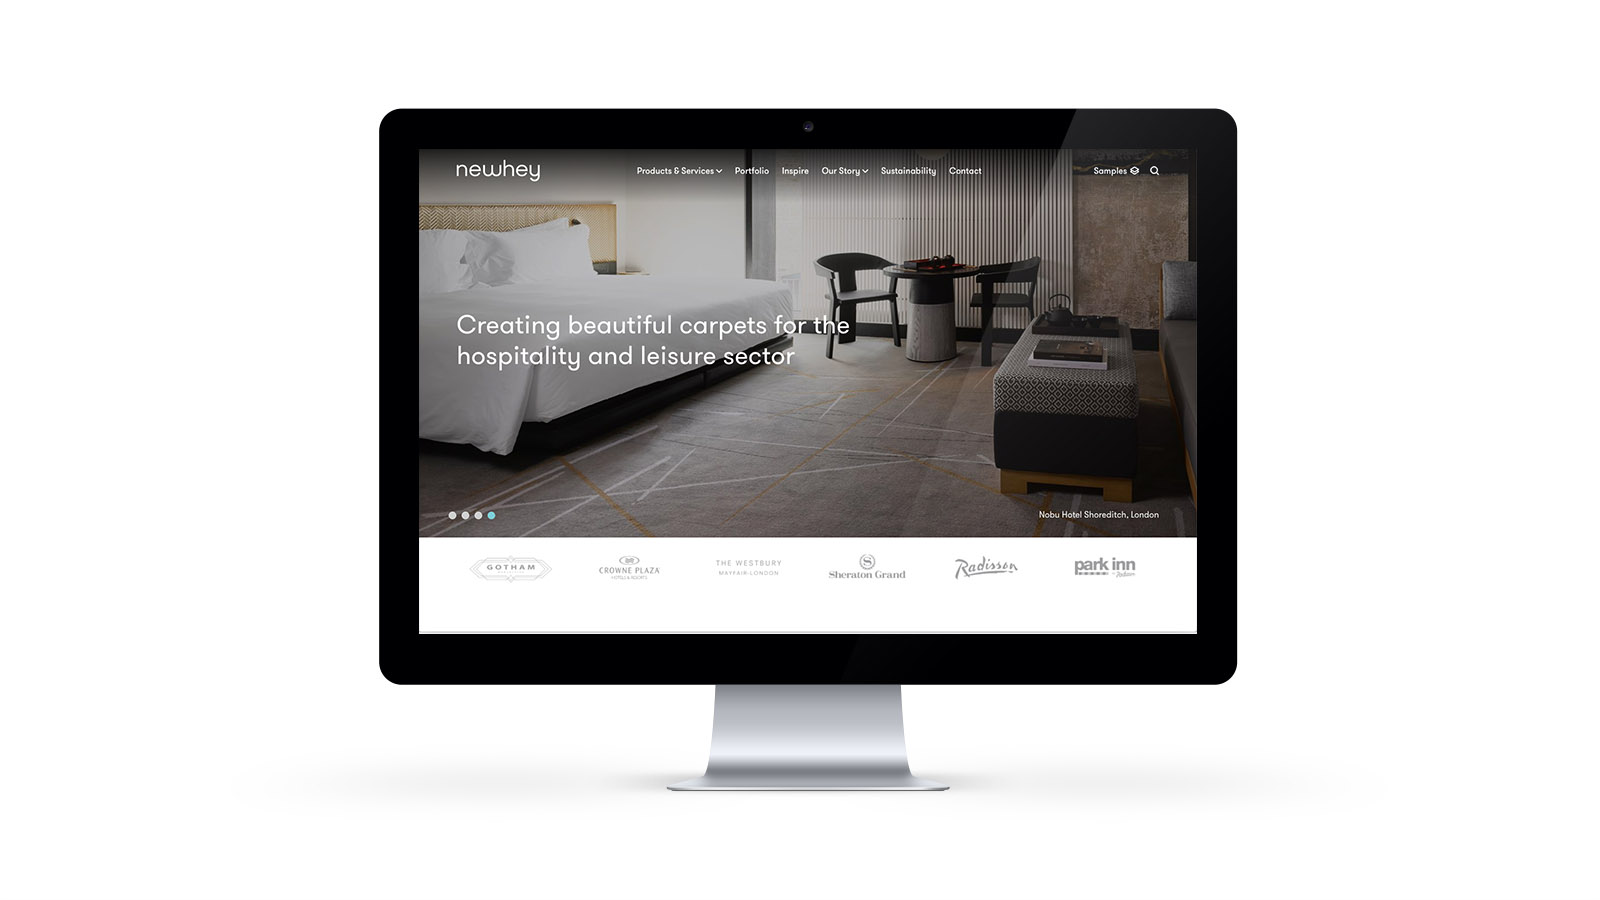 newhey-home-page